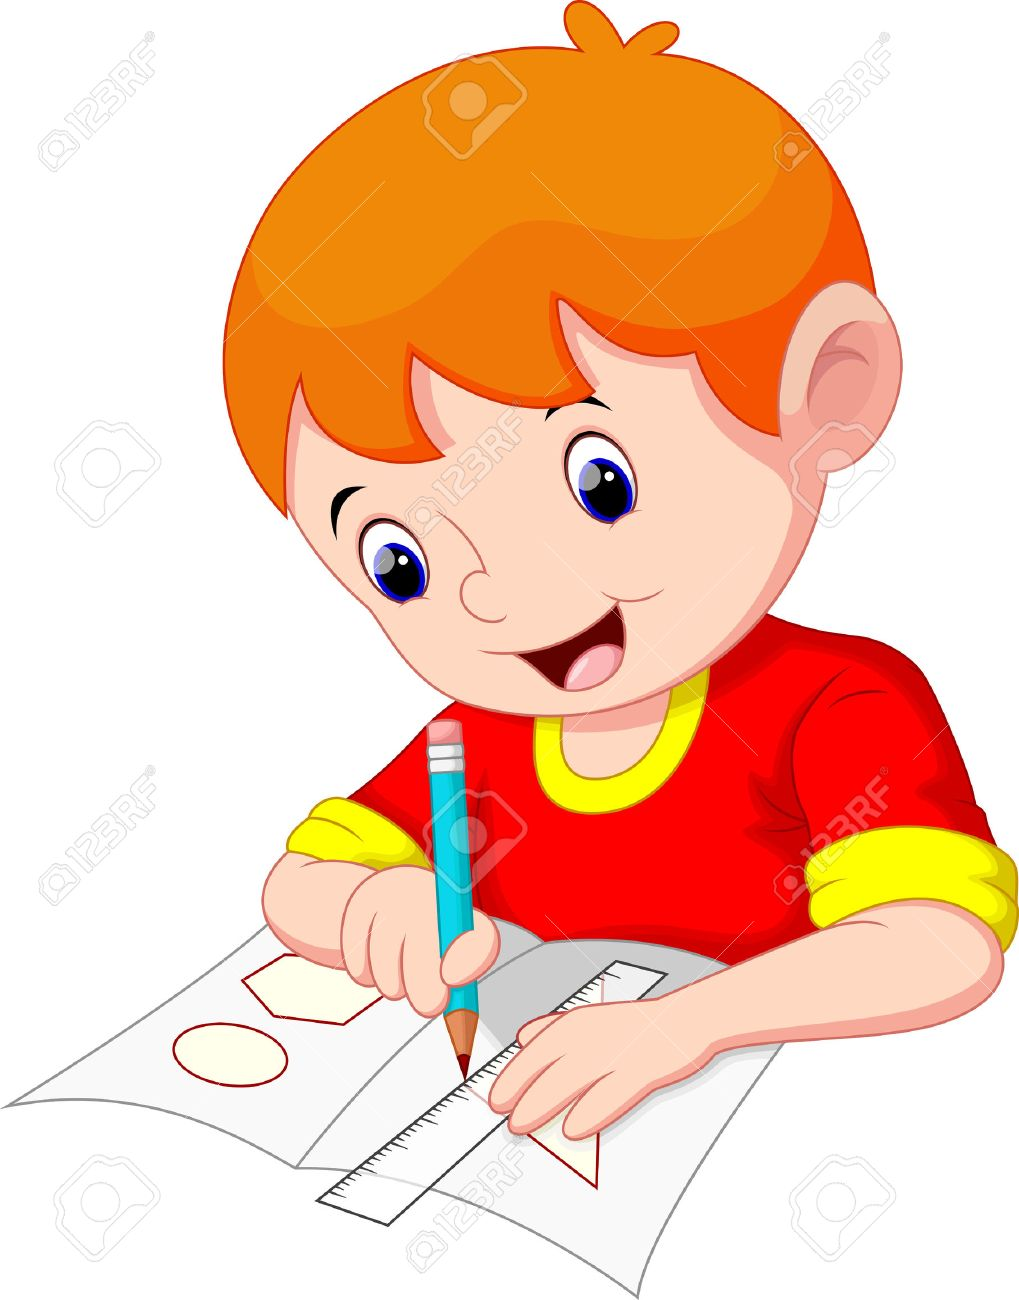 Little boy drawing on a piece of paper.